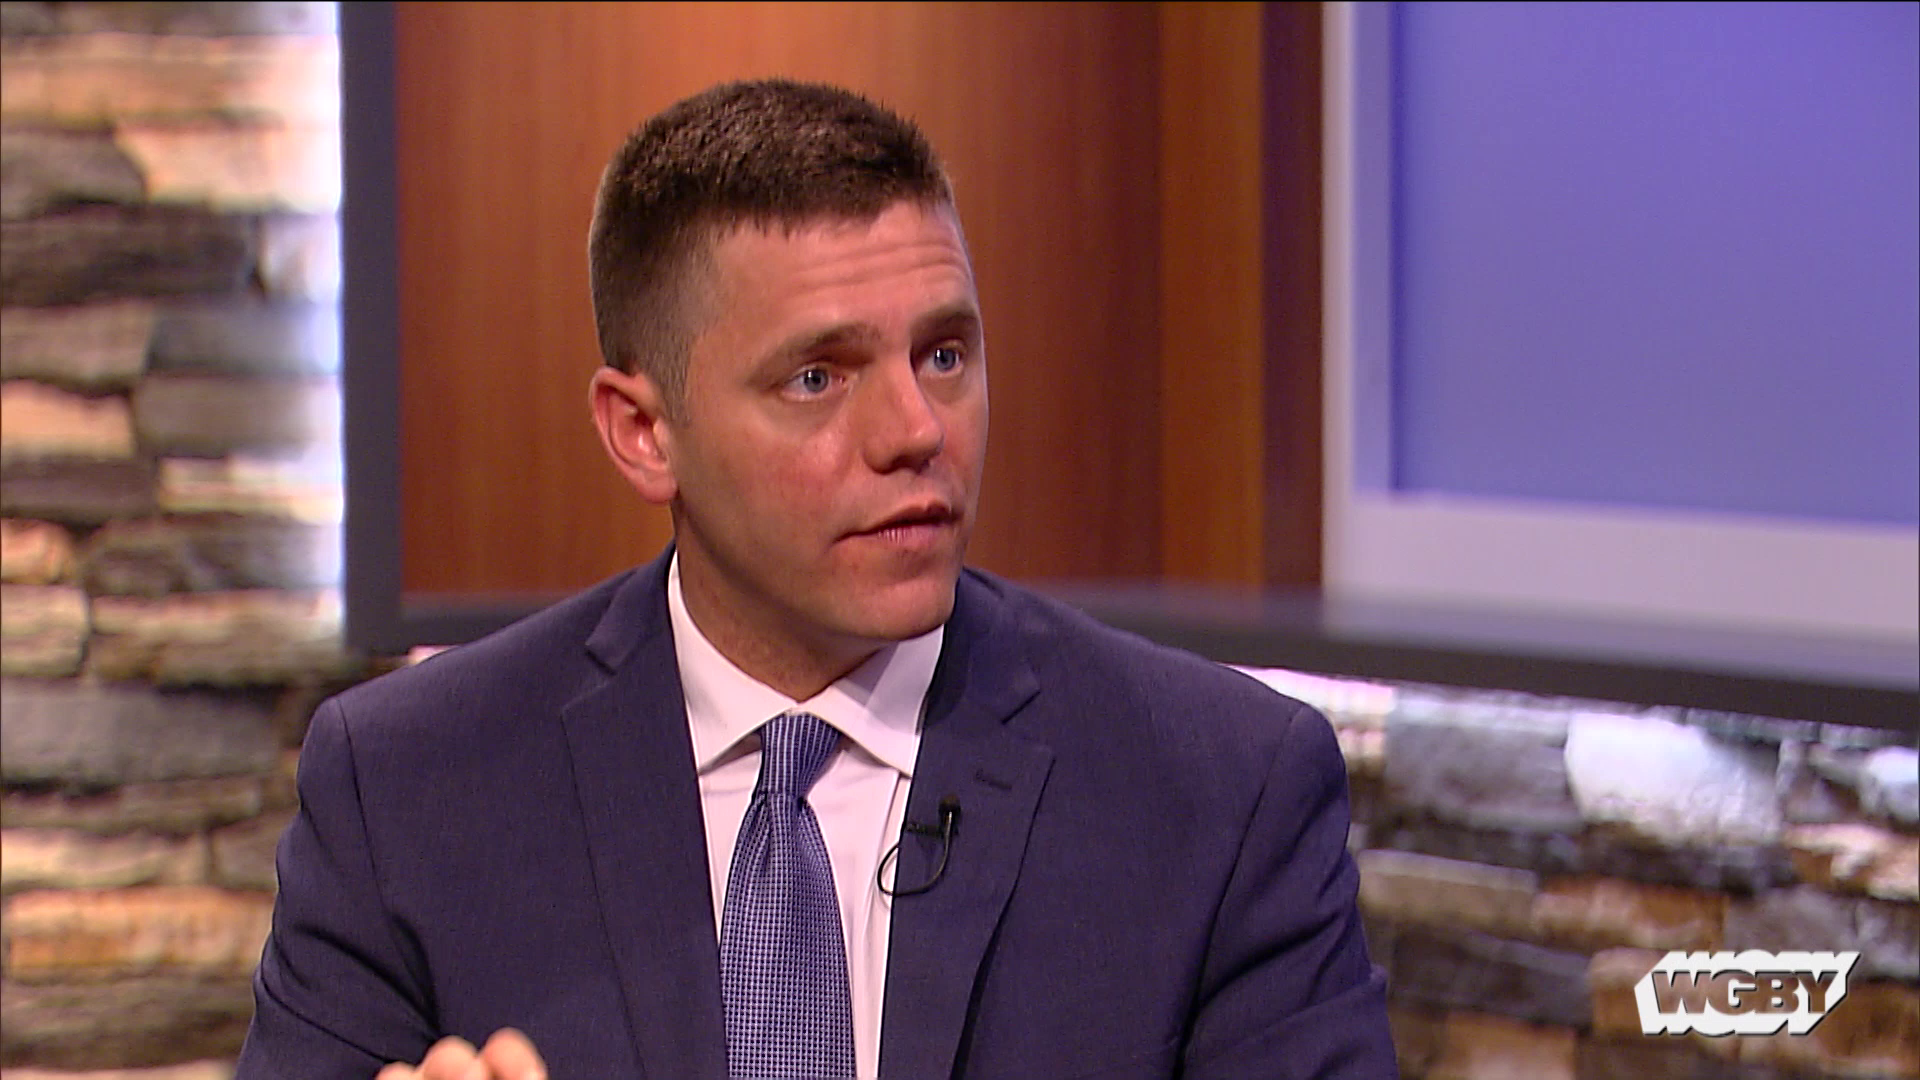 Massachusetts Rep. John Velis joins Carrie Saldo to discuss his upcoming deployment to Afghanistan as part of his service as a Captain in the US Army Reserves. Velis departs in mid-June.